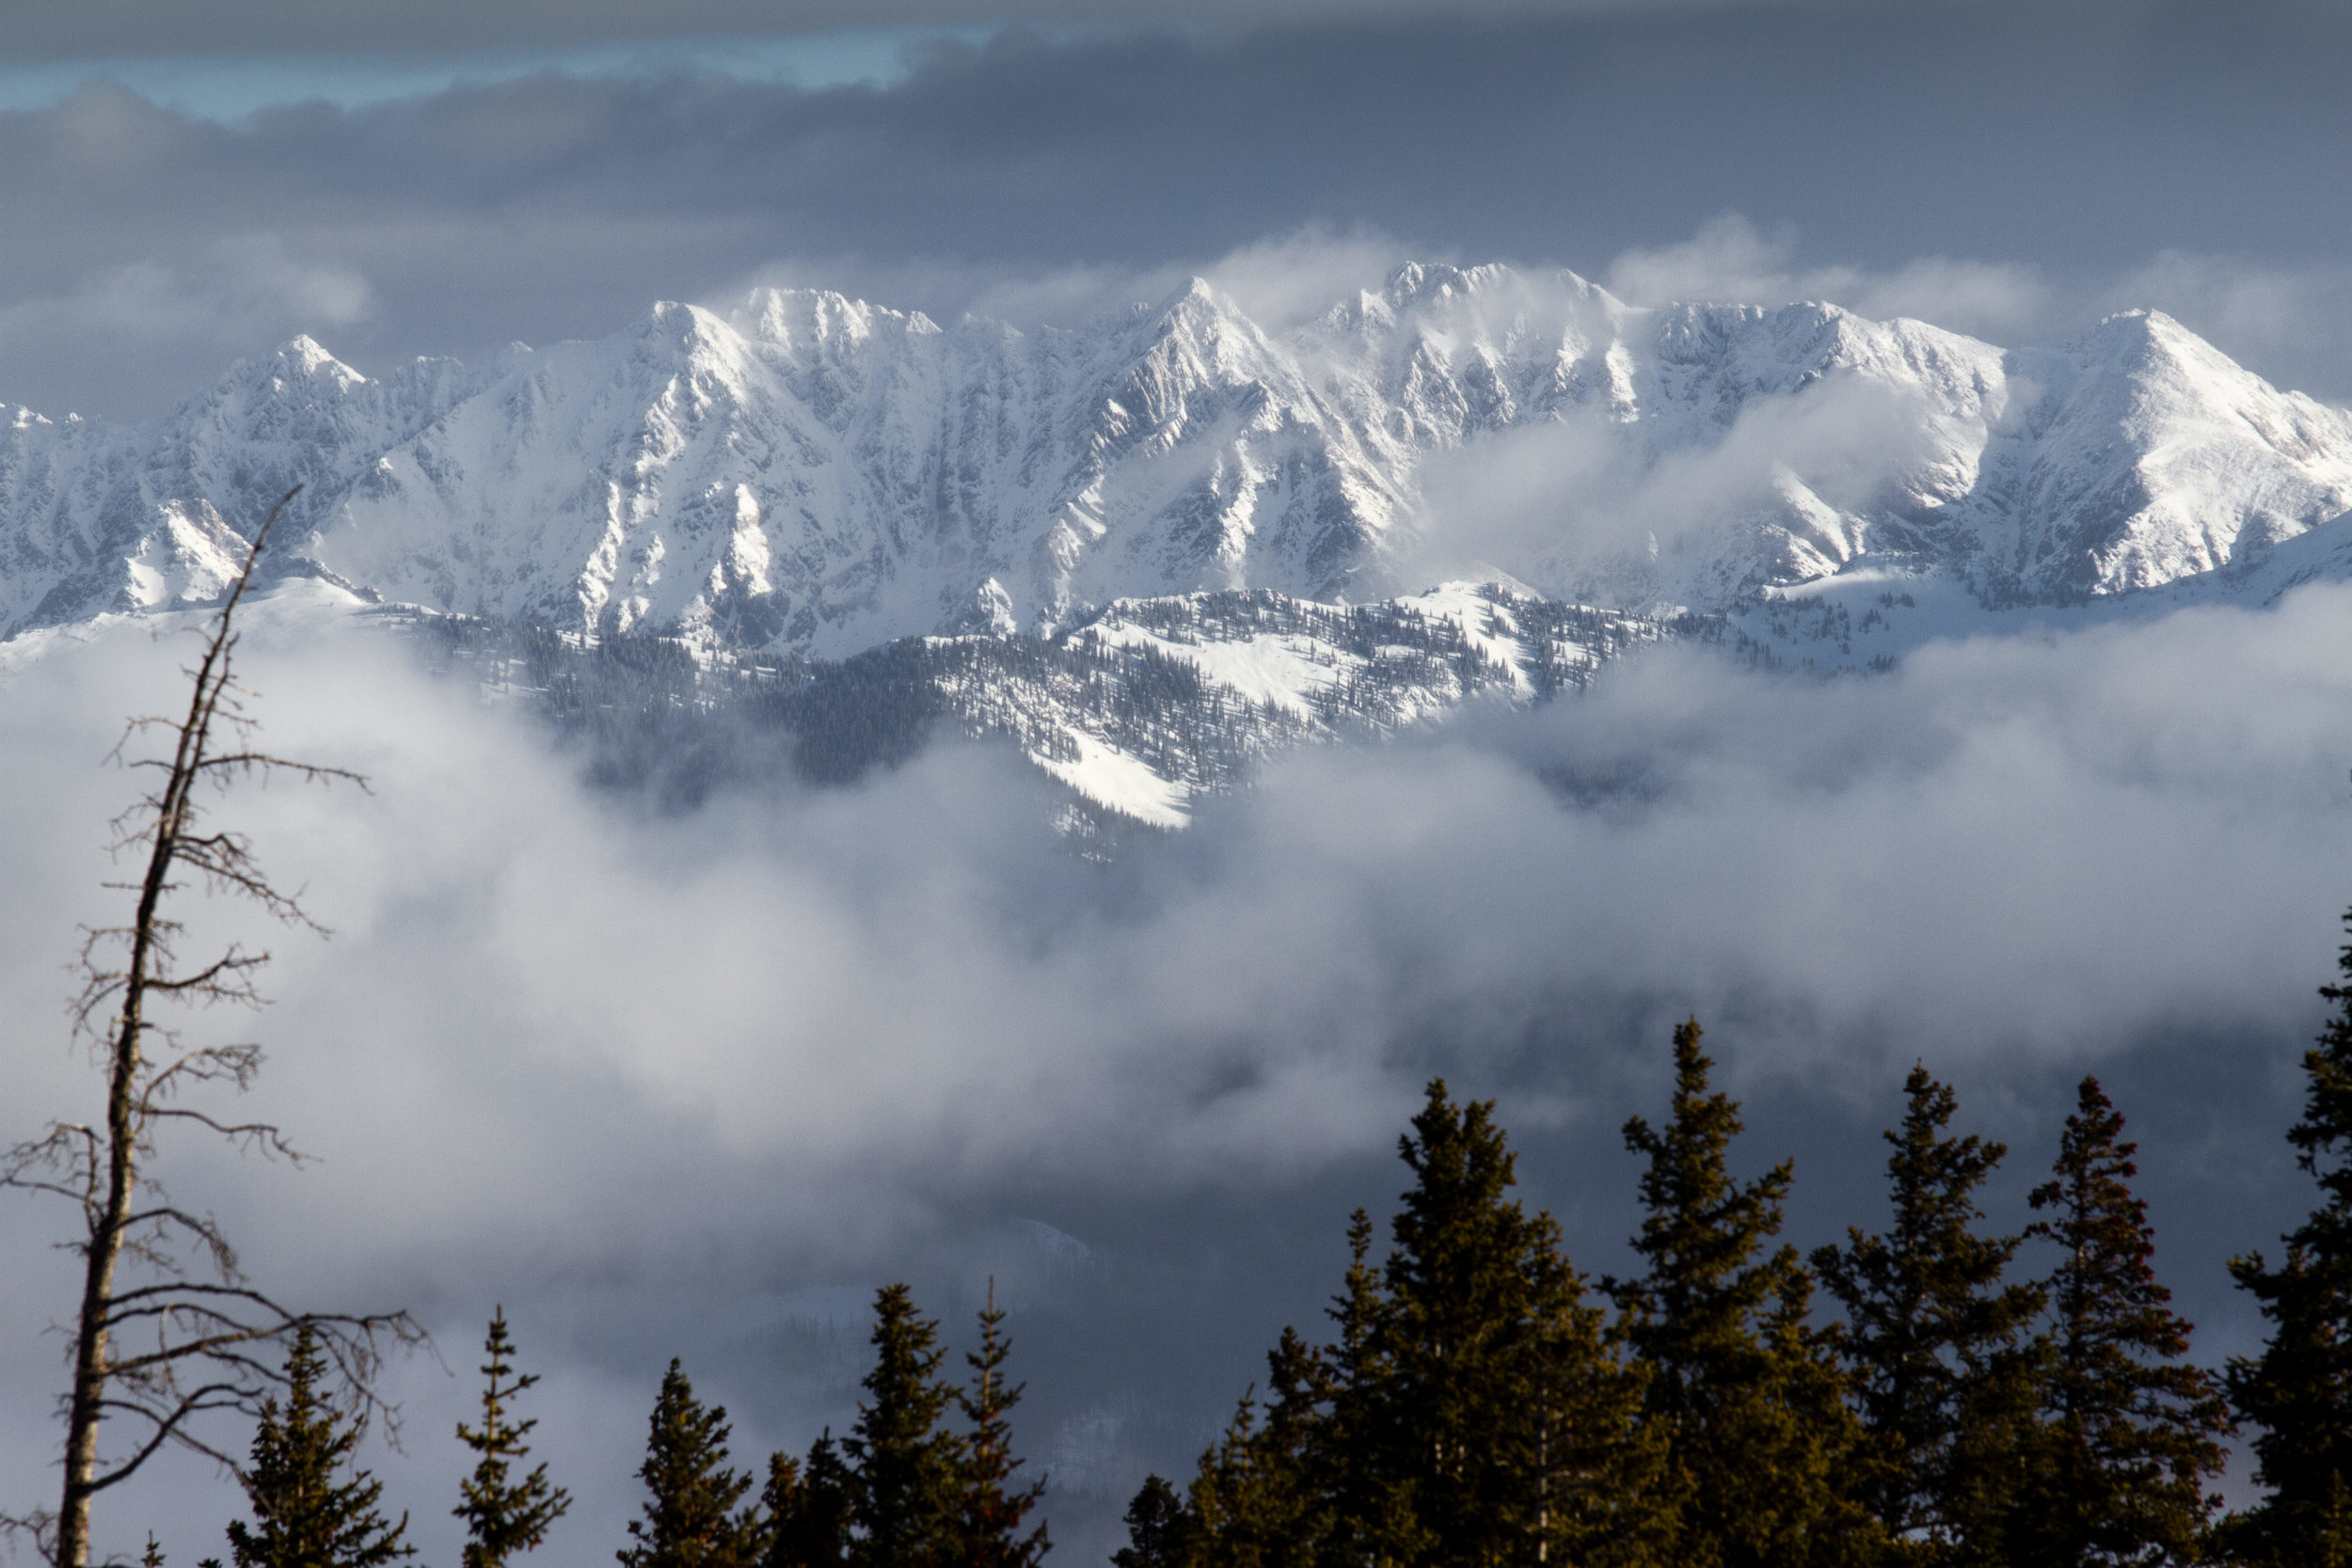 The Gore Range shining through the clouds as seen from Beaver Creek during the Birds of Prey ski races. 5, December 2014